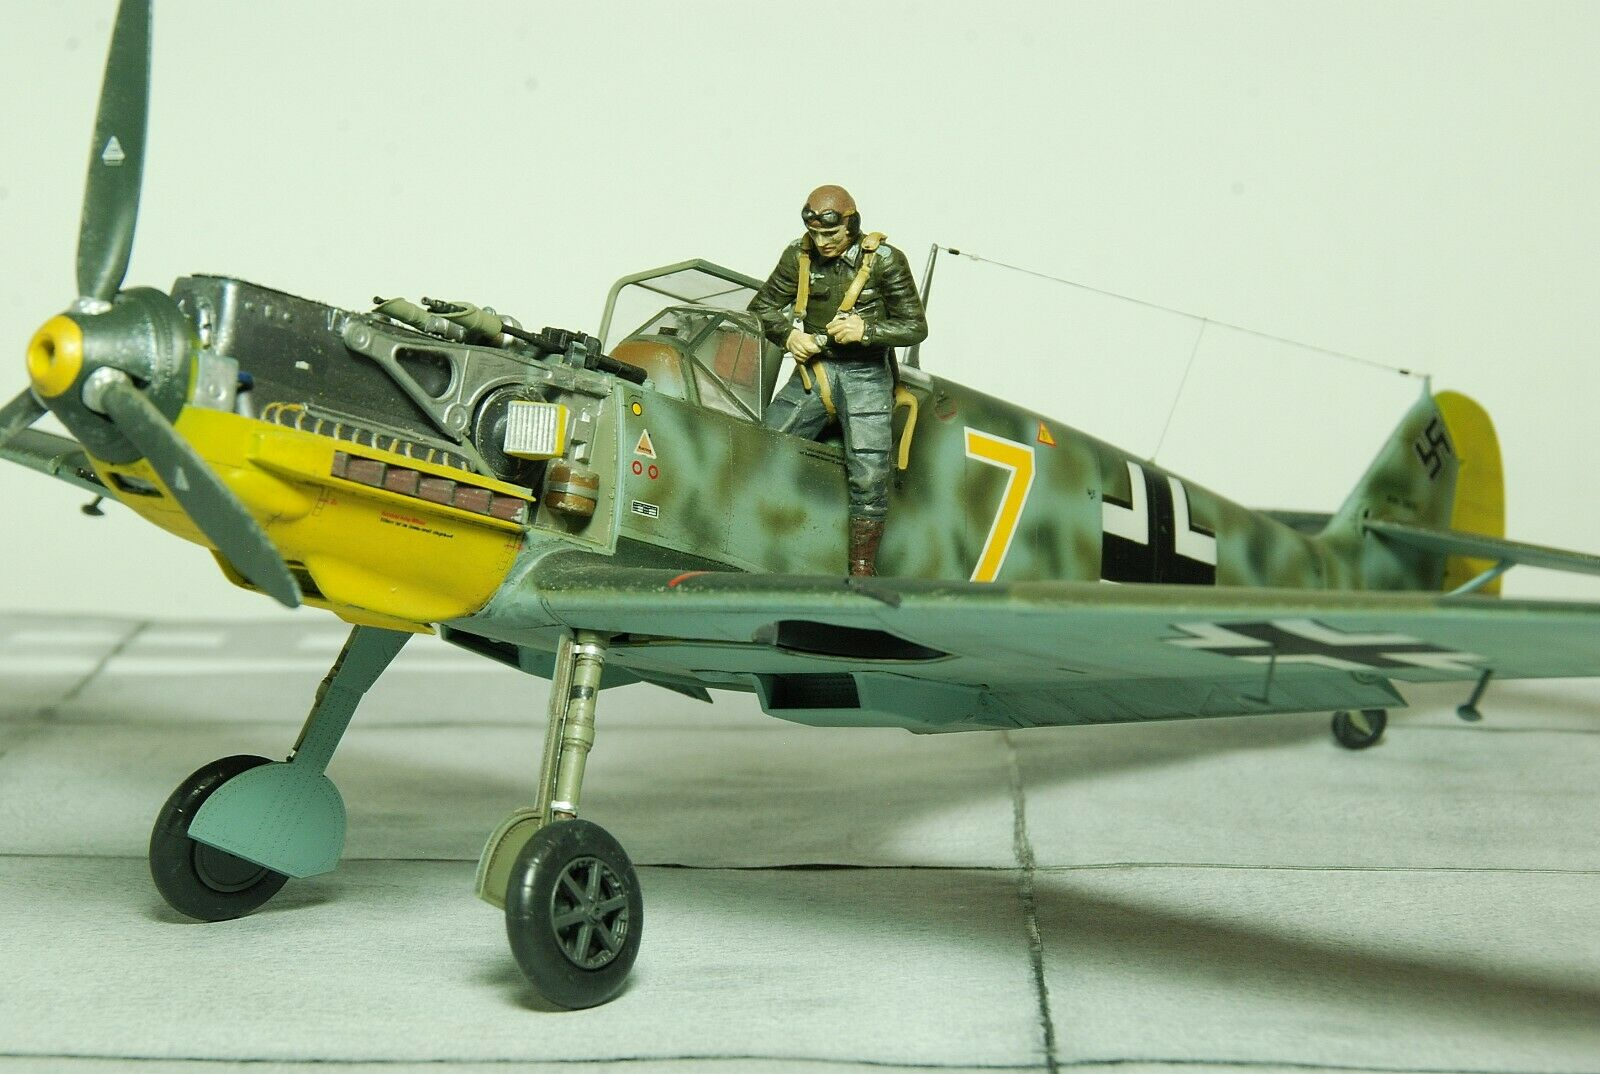 1 32 PROFESSIONALLY BUILT Messerschmitt BF 109E-1 with Pilots&Ground crew